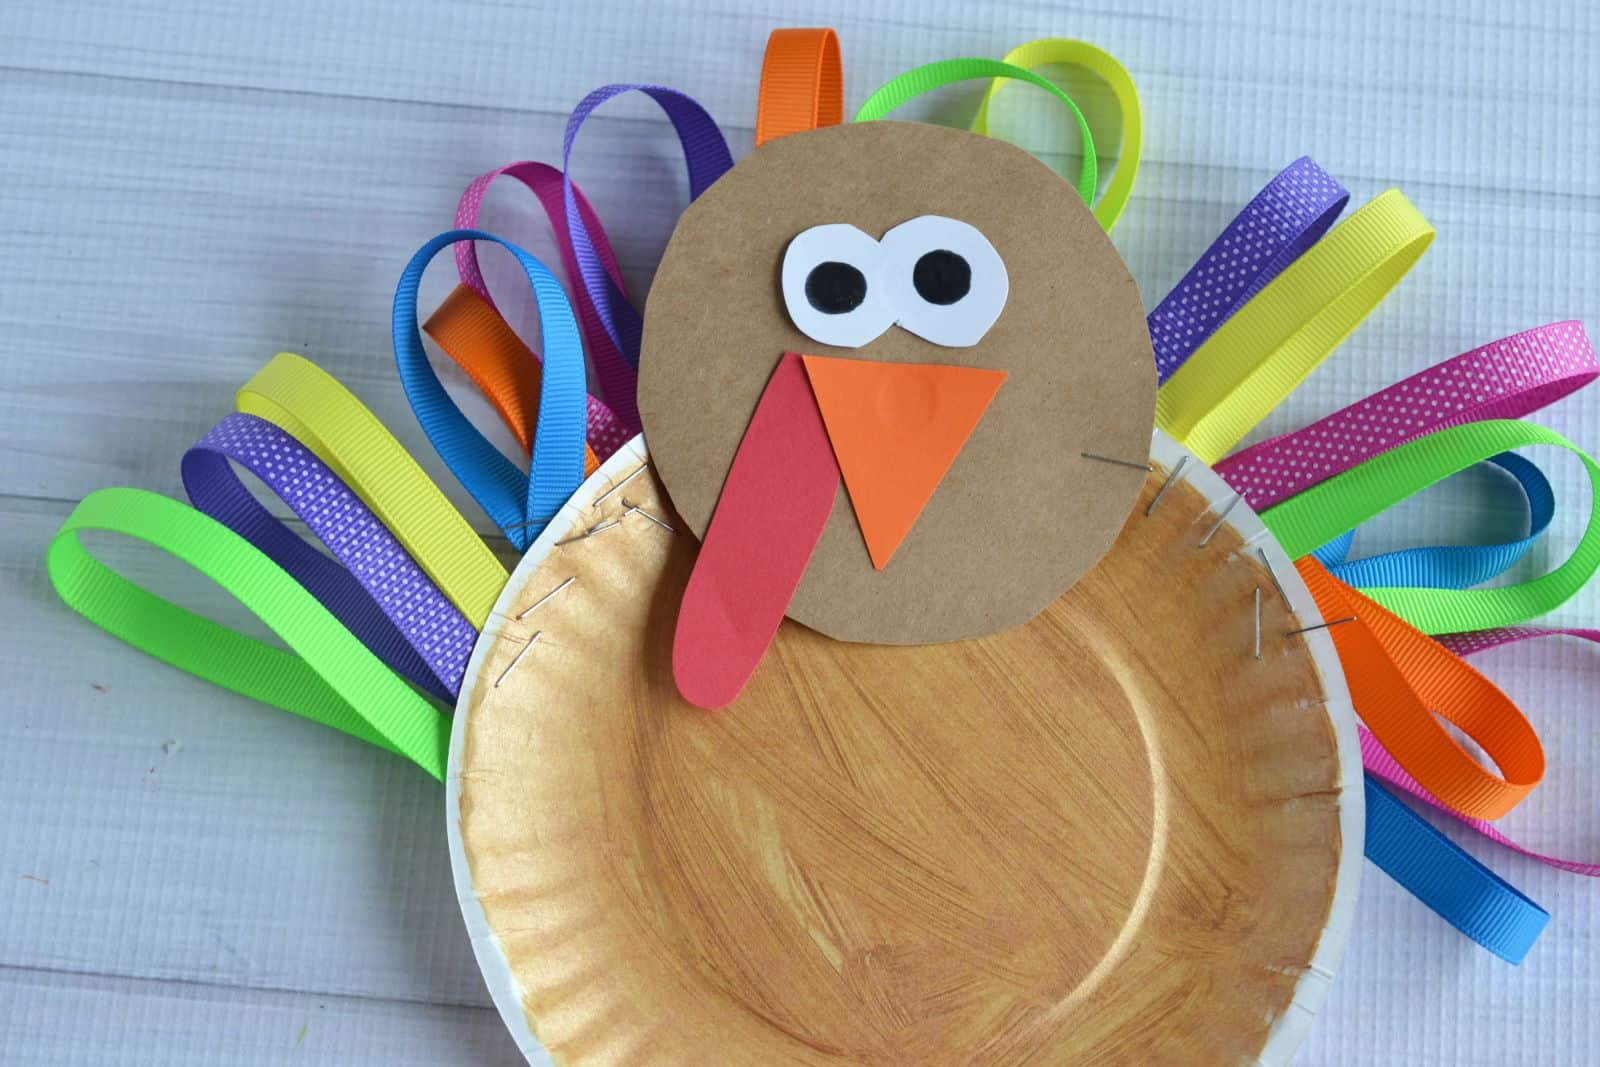 10 Artsy Turkey Projects Kids Can Make To Celebrate